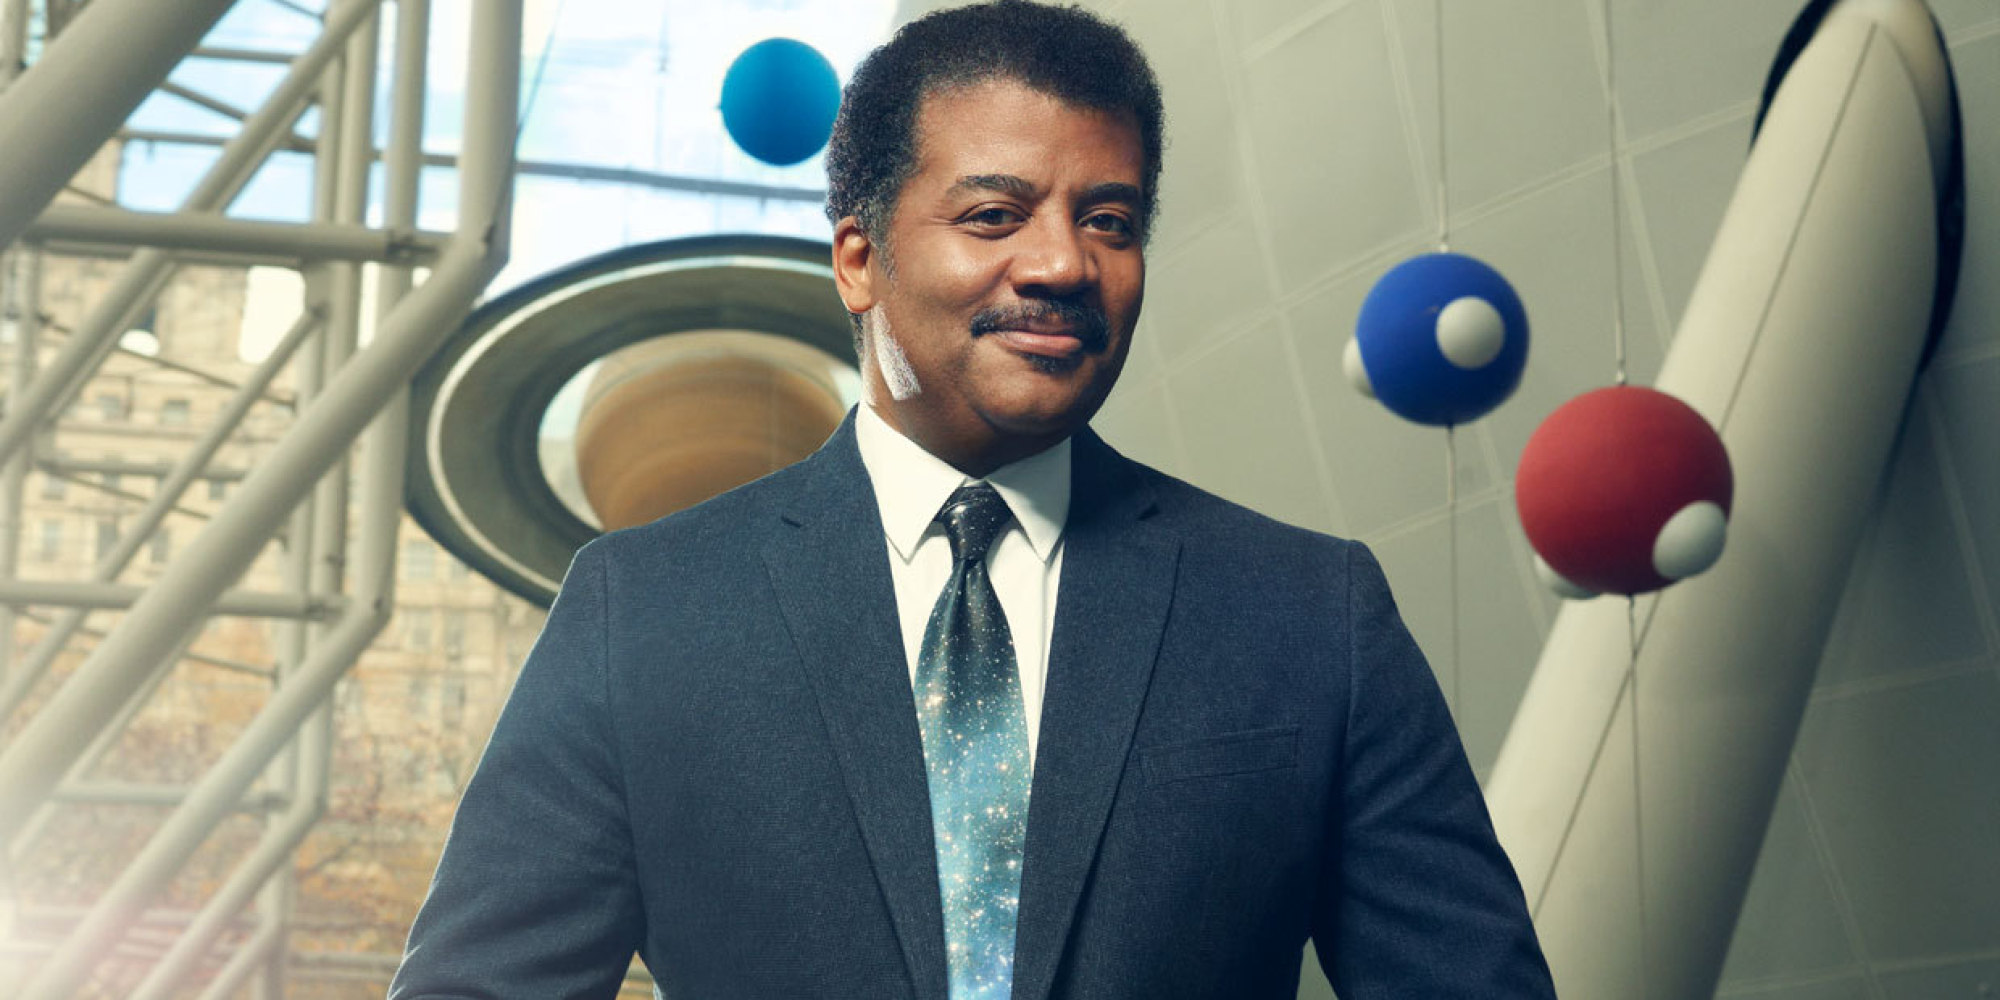 Best Neil DeGrasse Tyson Twitter tweets in 2015